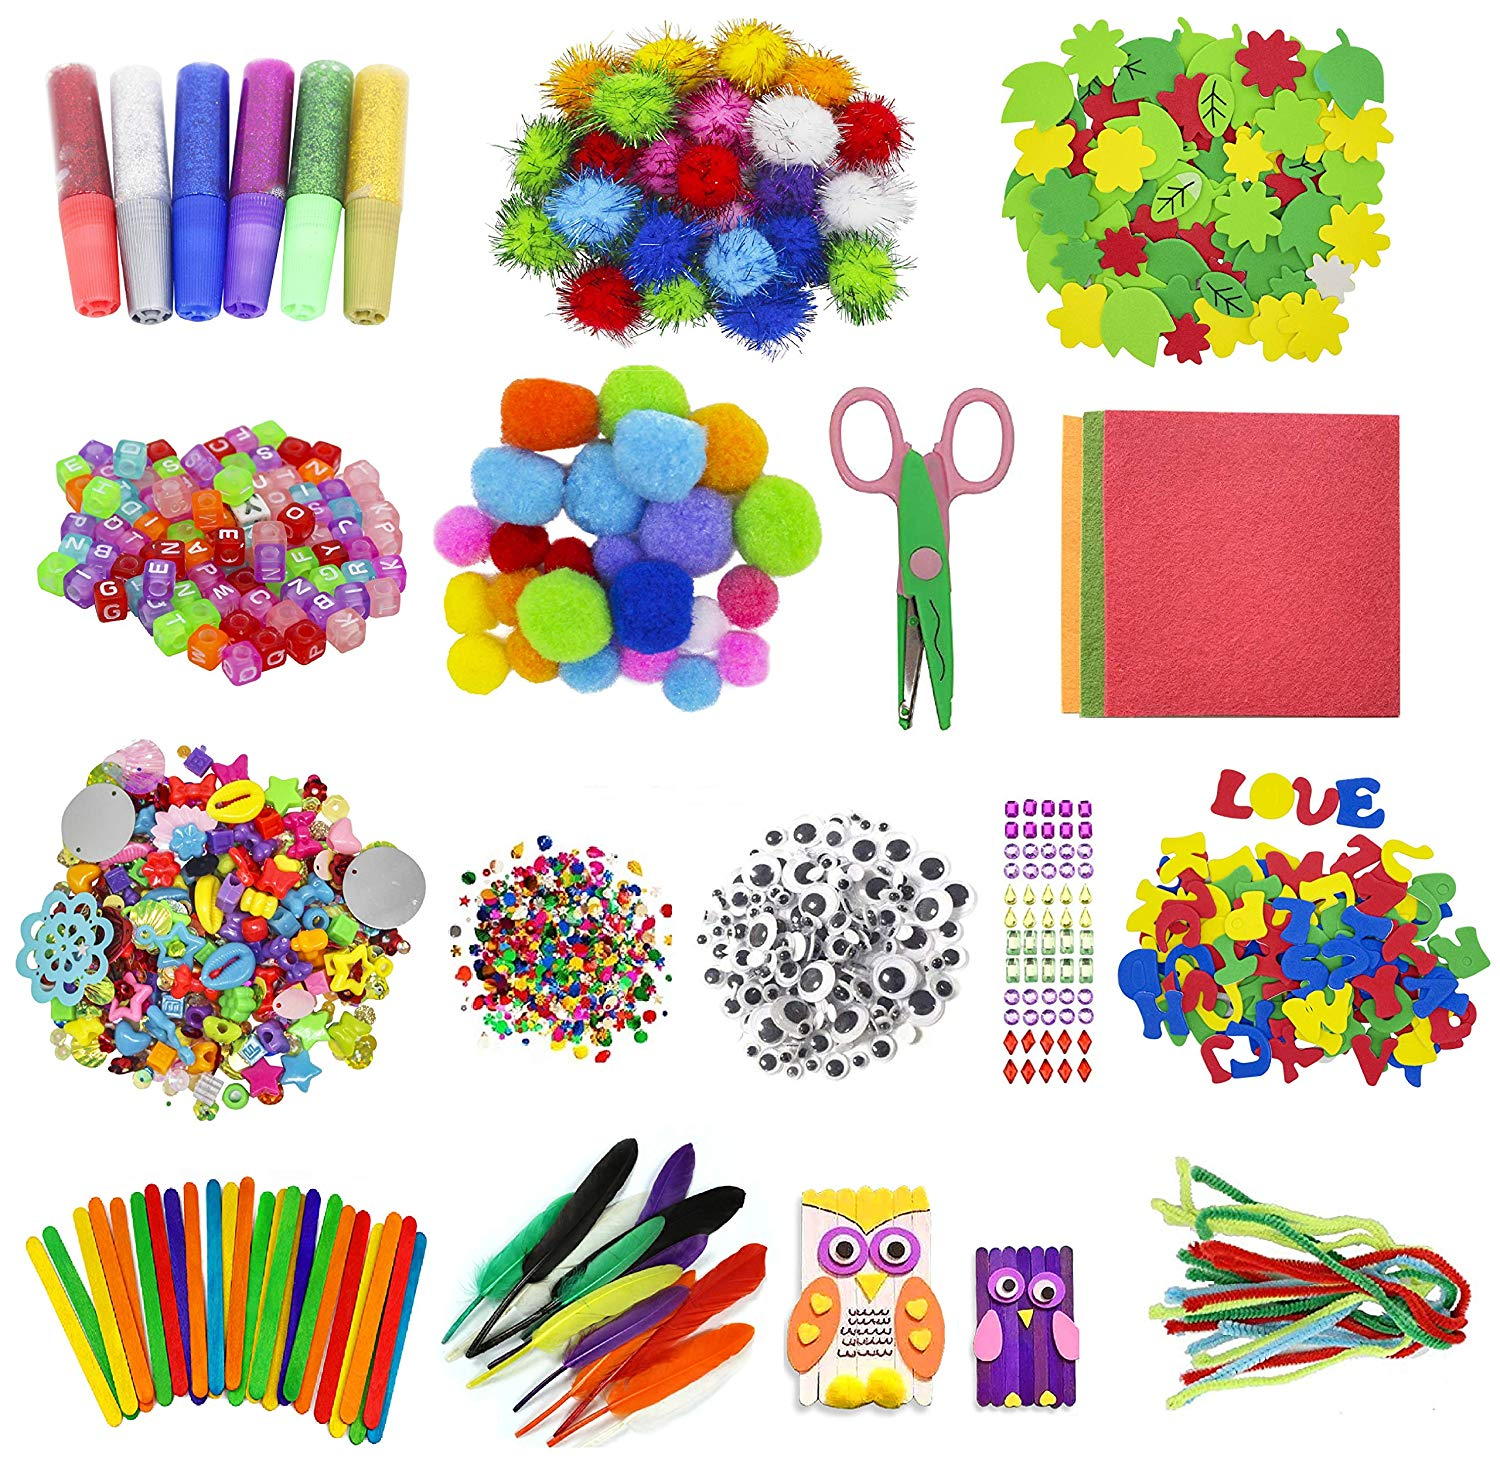 Assorted Arts and Crafts Supplies for Kids Girls Ages 6 7 8 9 10, Pipe  Cleaners, Letter Beads, Pom Poms,Glue,Sticks,Wiggle Googly Eyes,All in One.